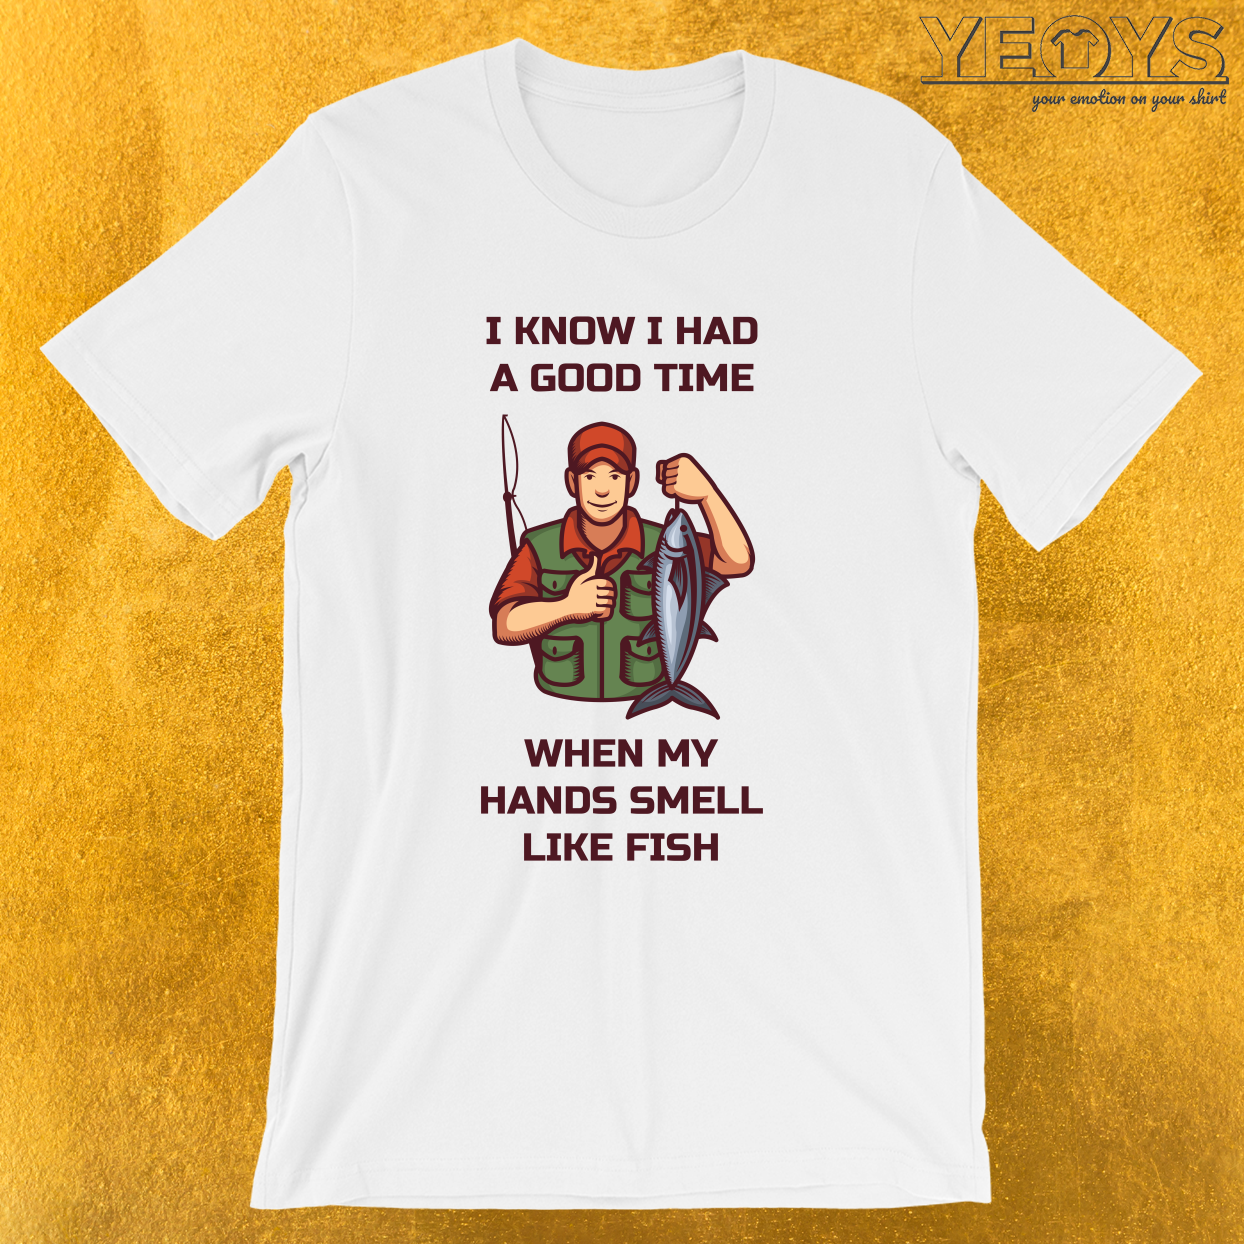 When My Hands Smell Like Fish – Funny Fishing Tee